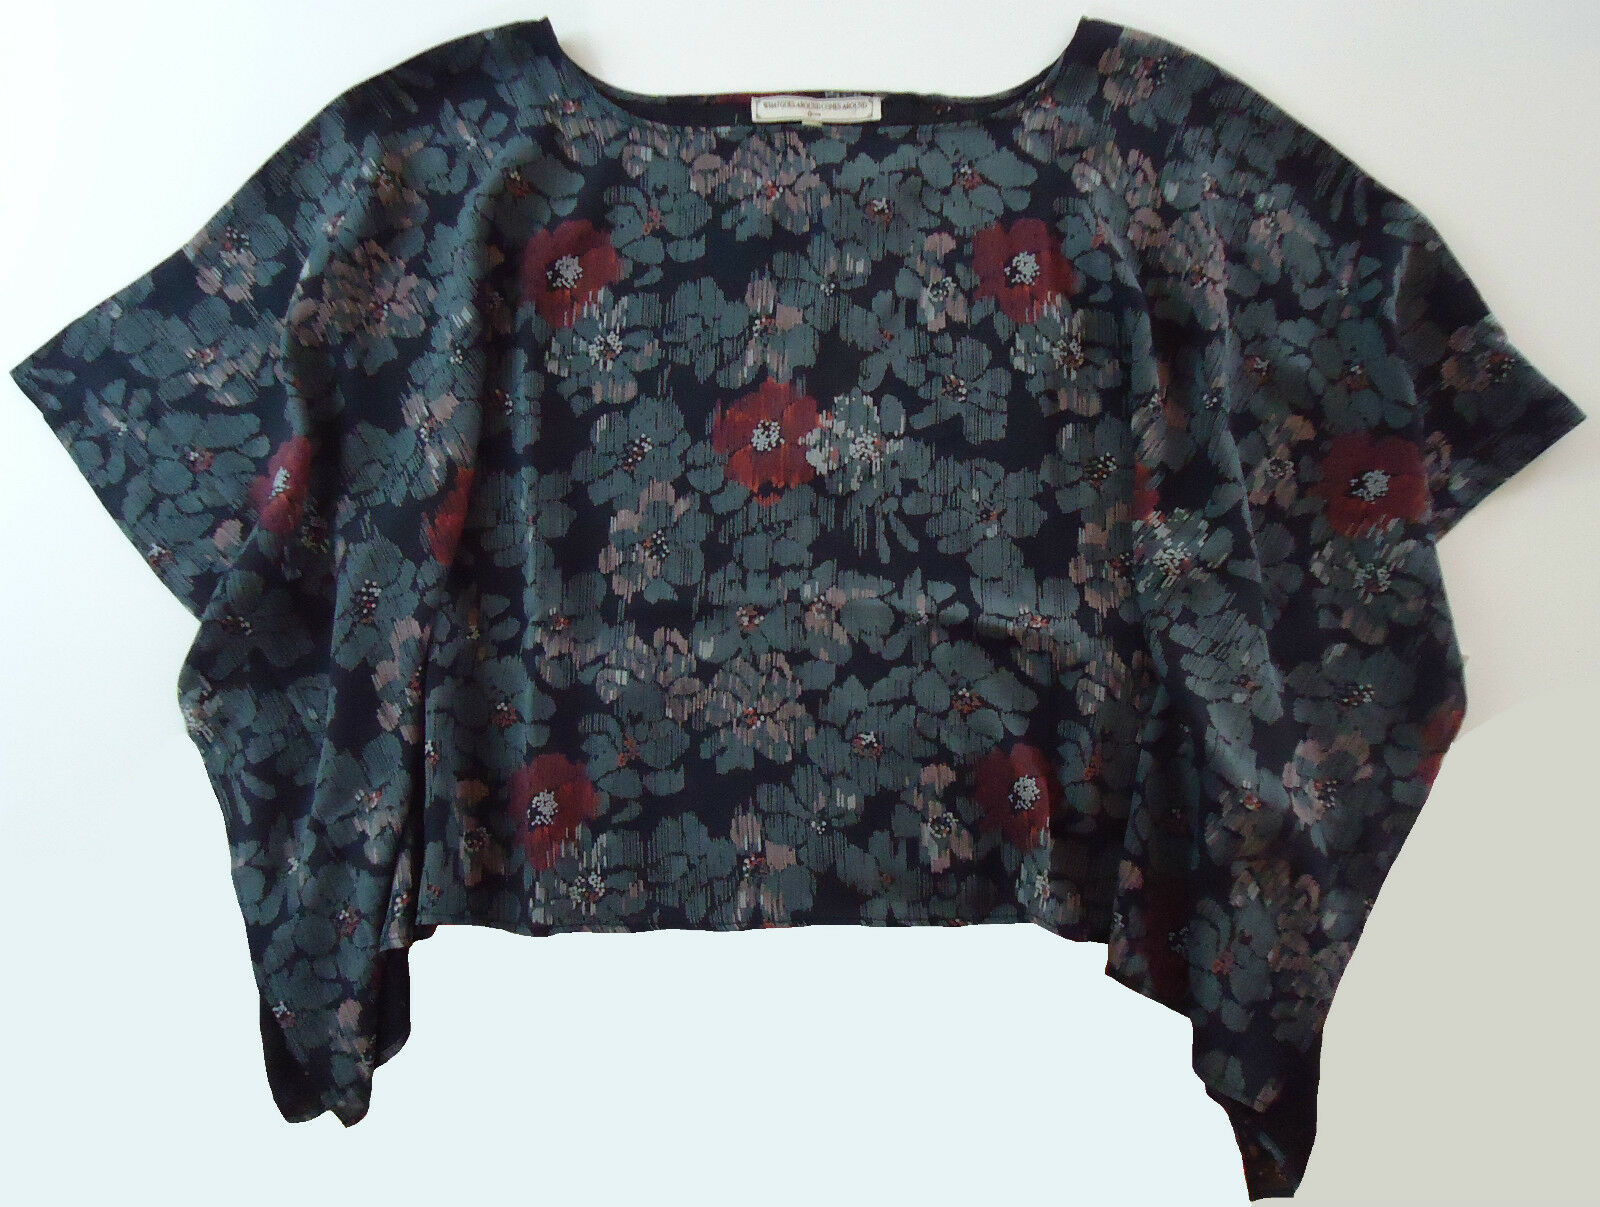 NWOT What Goes Around Comes Around Silk Floral Print Top Größe M